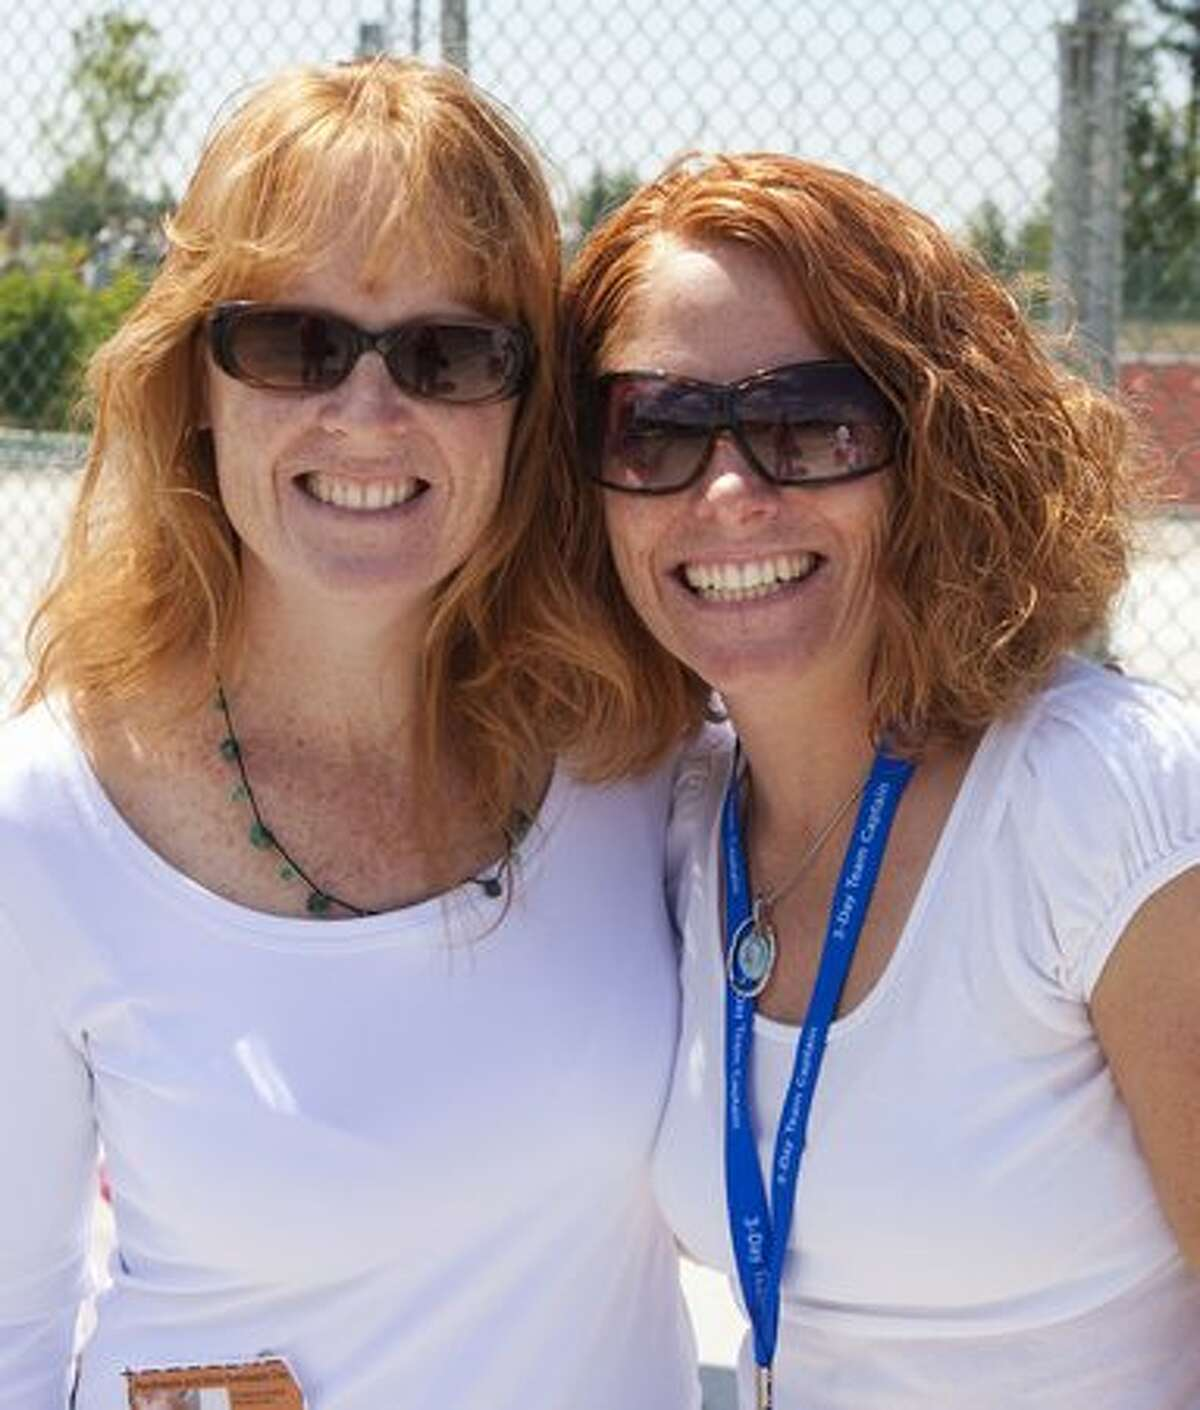 Kathy Kinard, left, and Angela Huber helped break the Guinness World Record for the largest gathering of natural redheads at Redheads and More Redheads Day in Sammamish.